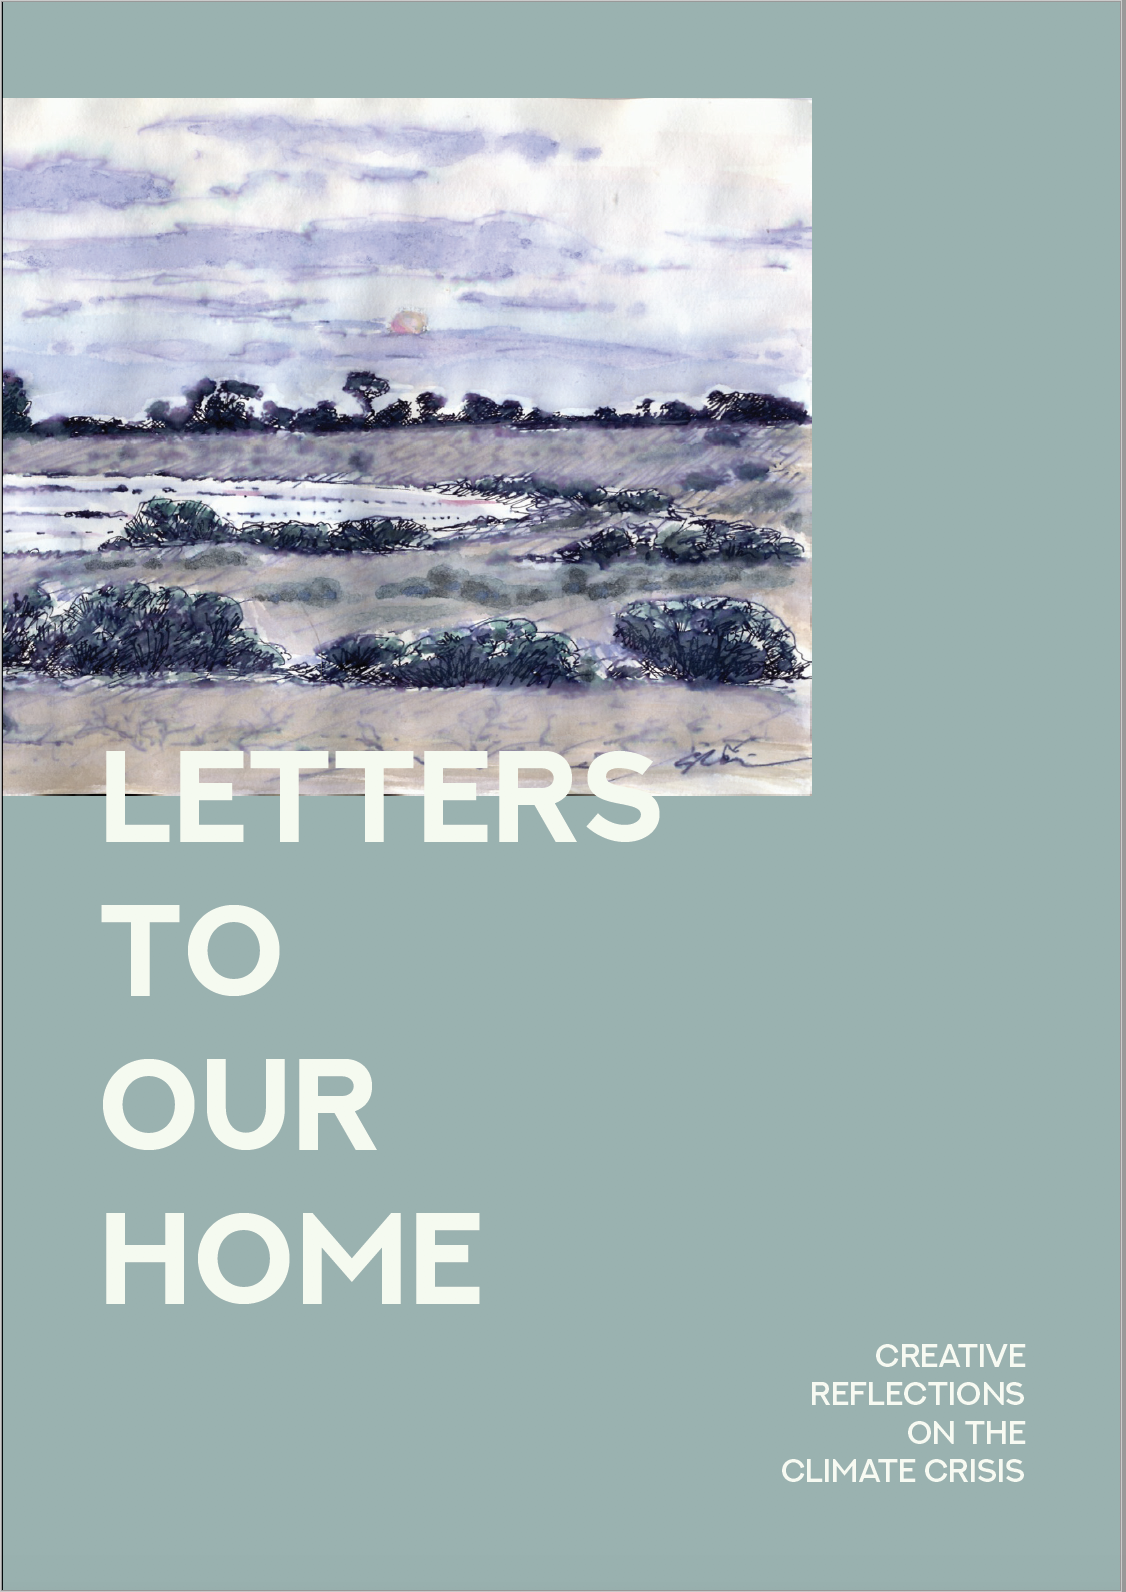 Letter to our Home